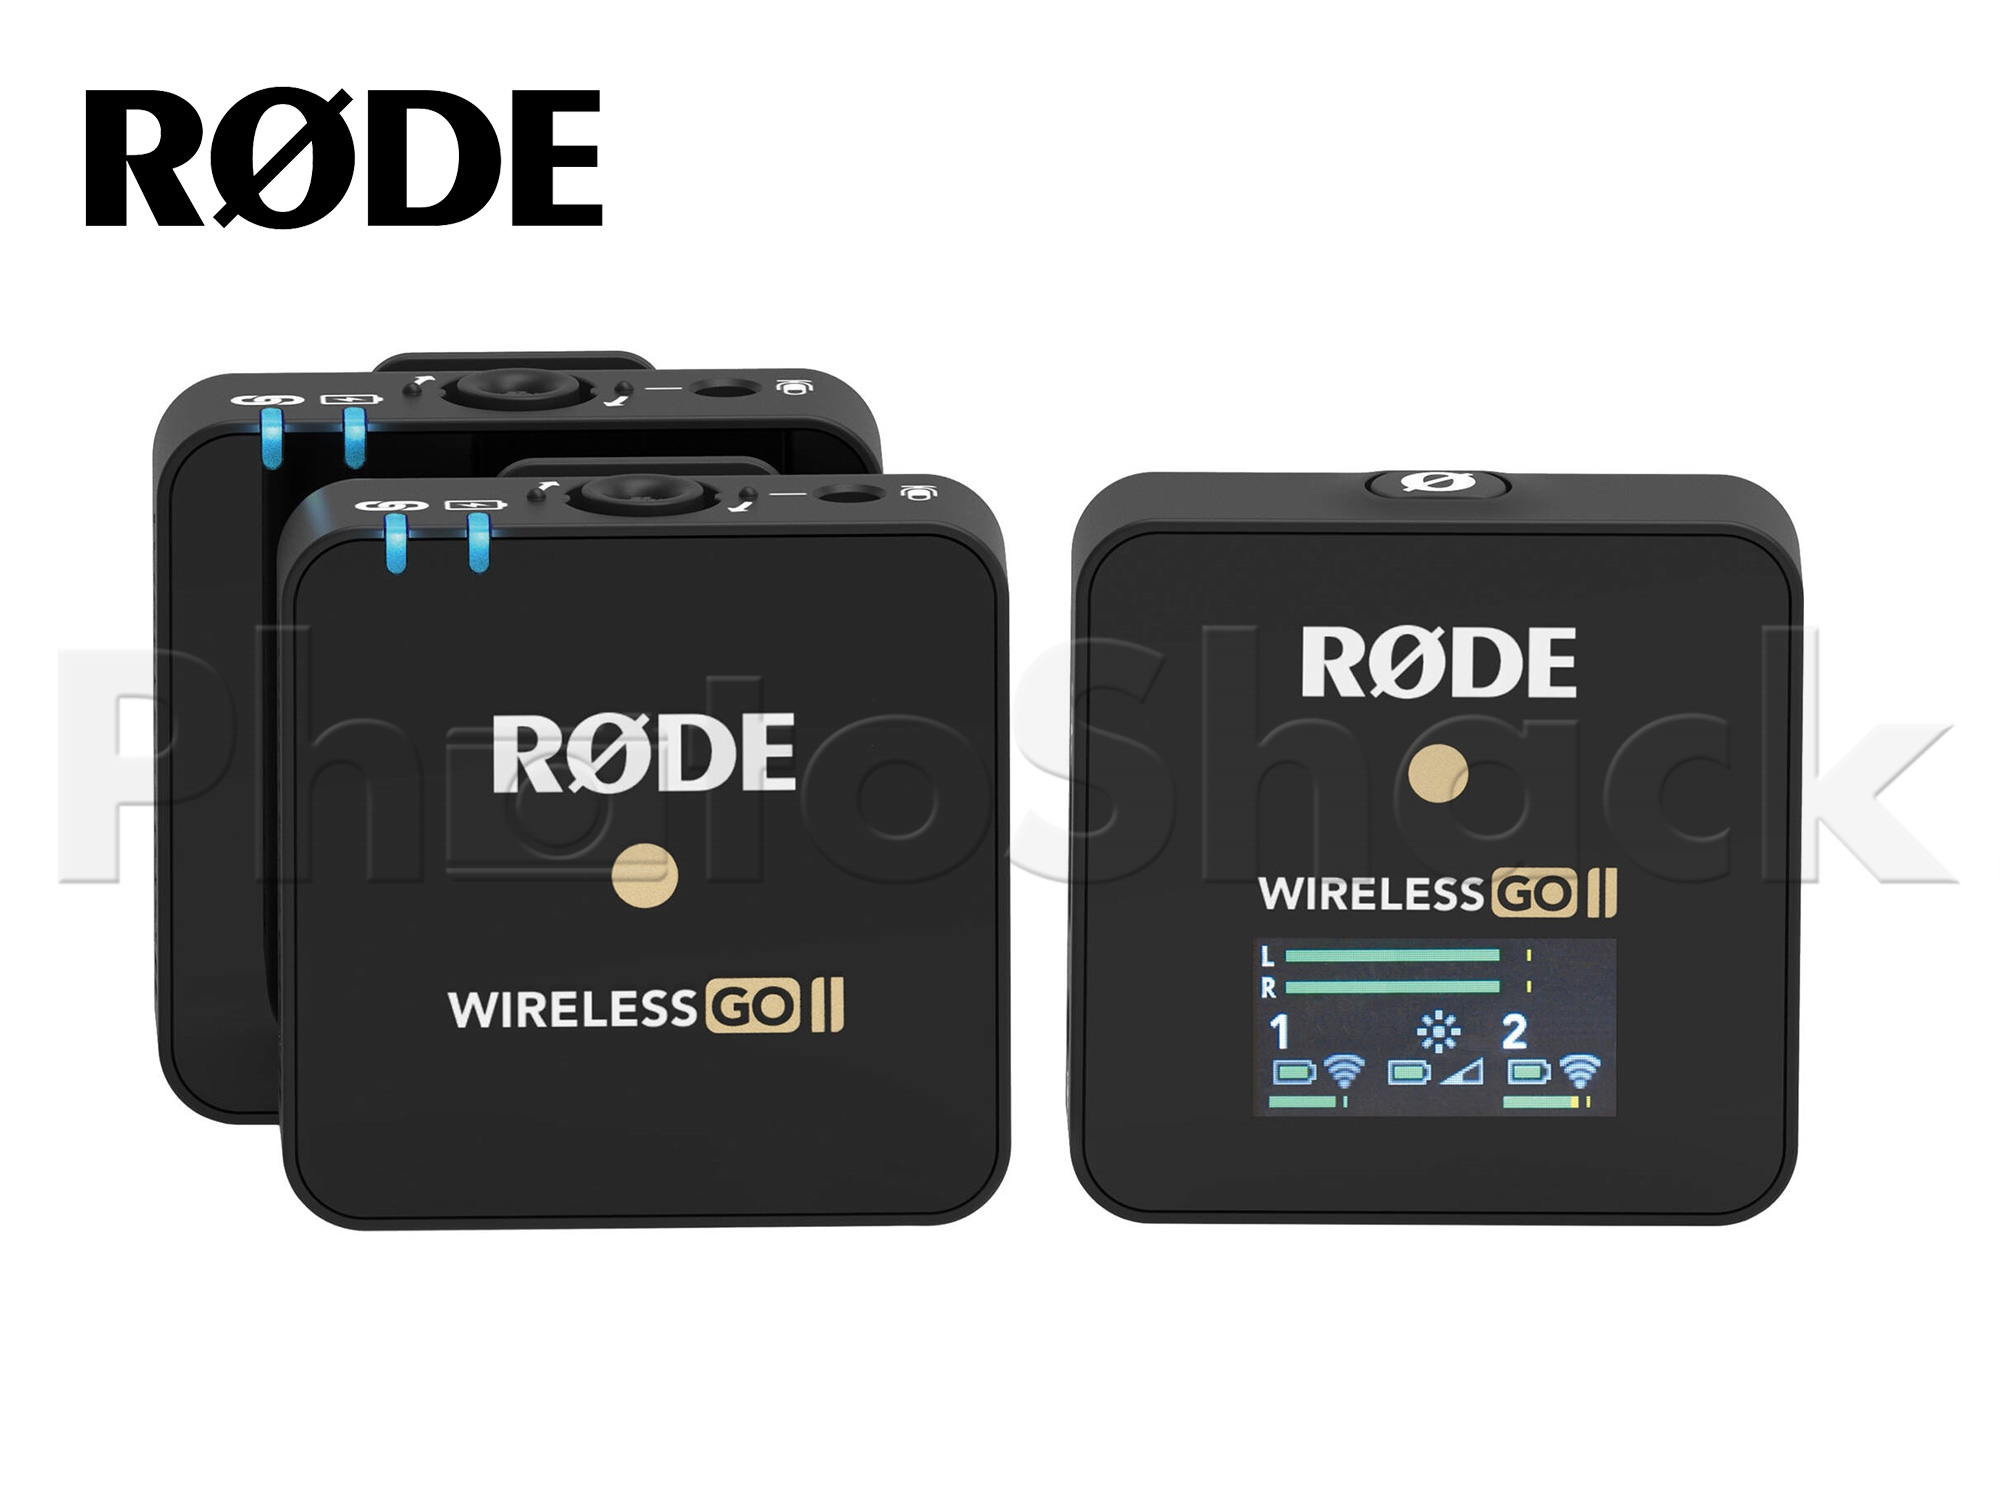 Rode Wireless GO II Compact Wireless Dual Microphone System